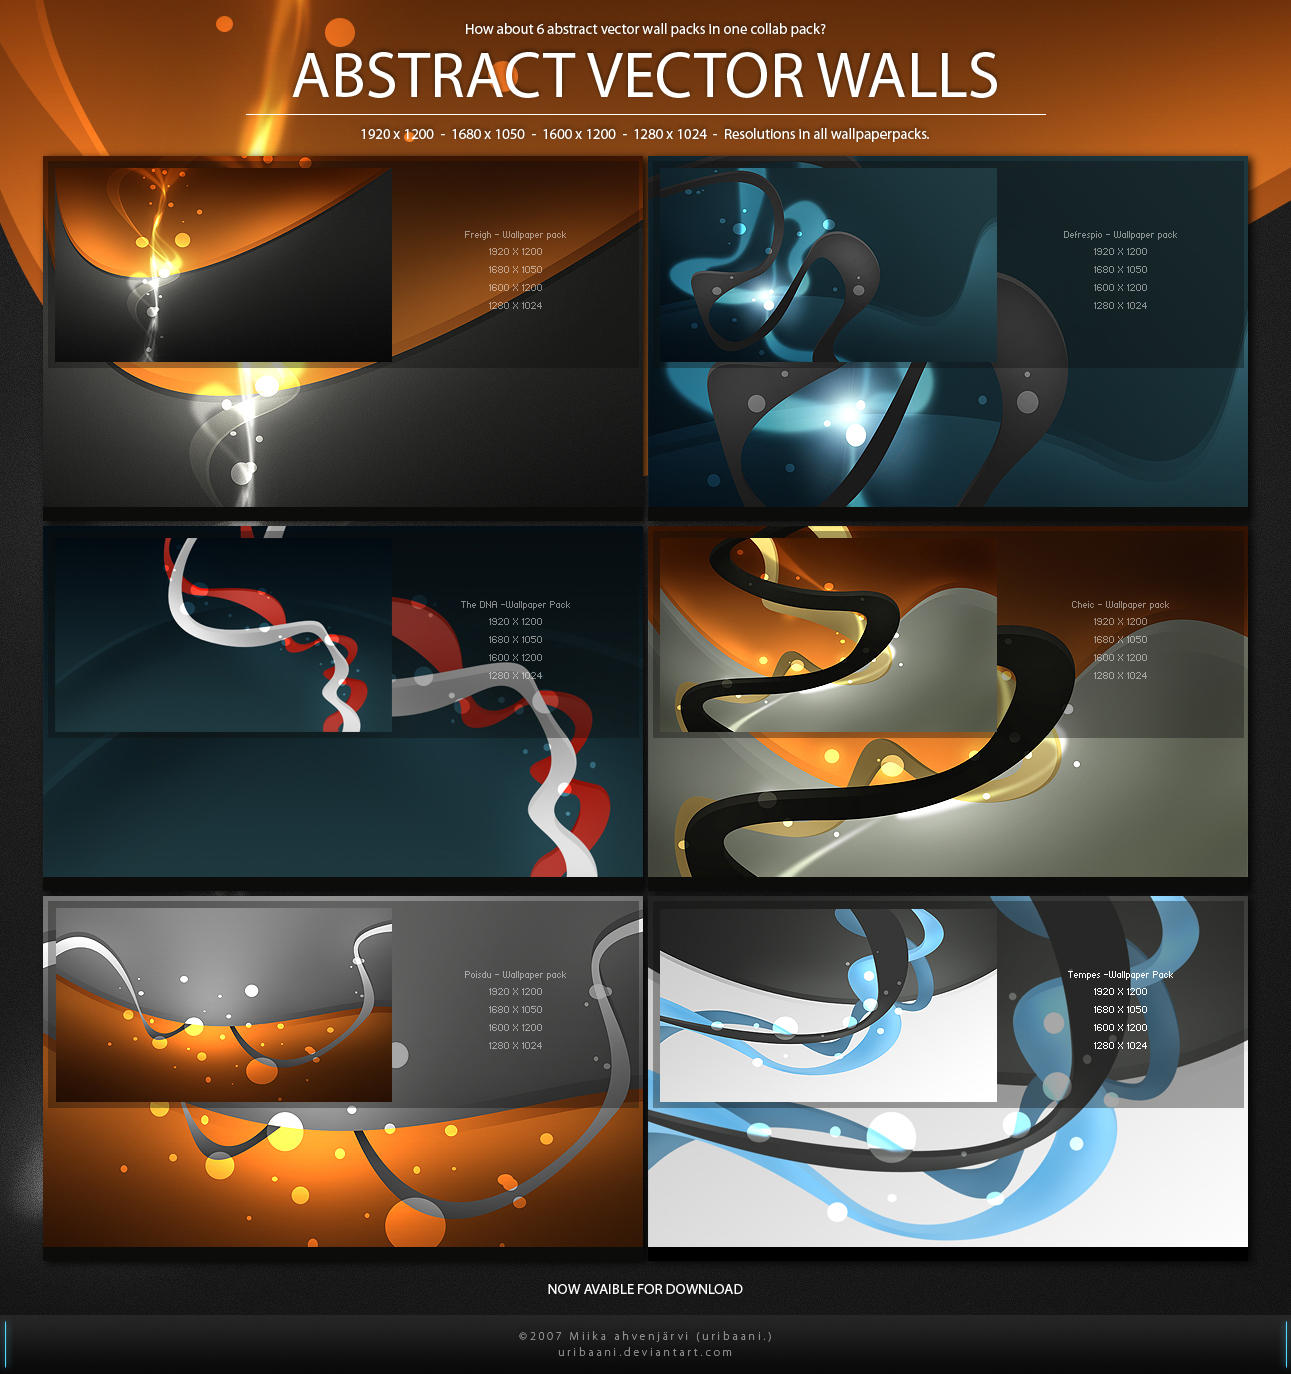 Abstract Vector Walls -WP Pack By Uribaani On DeviantArt